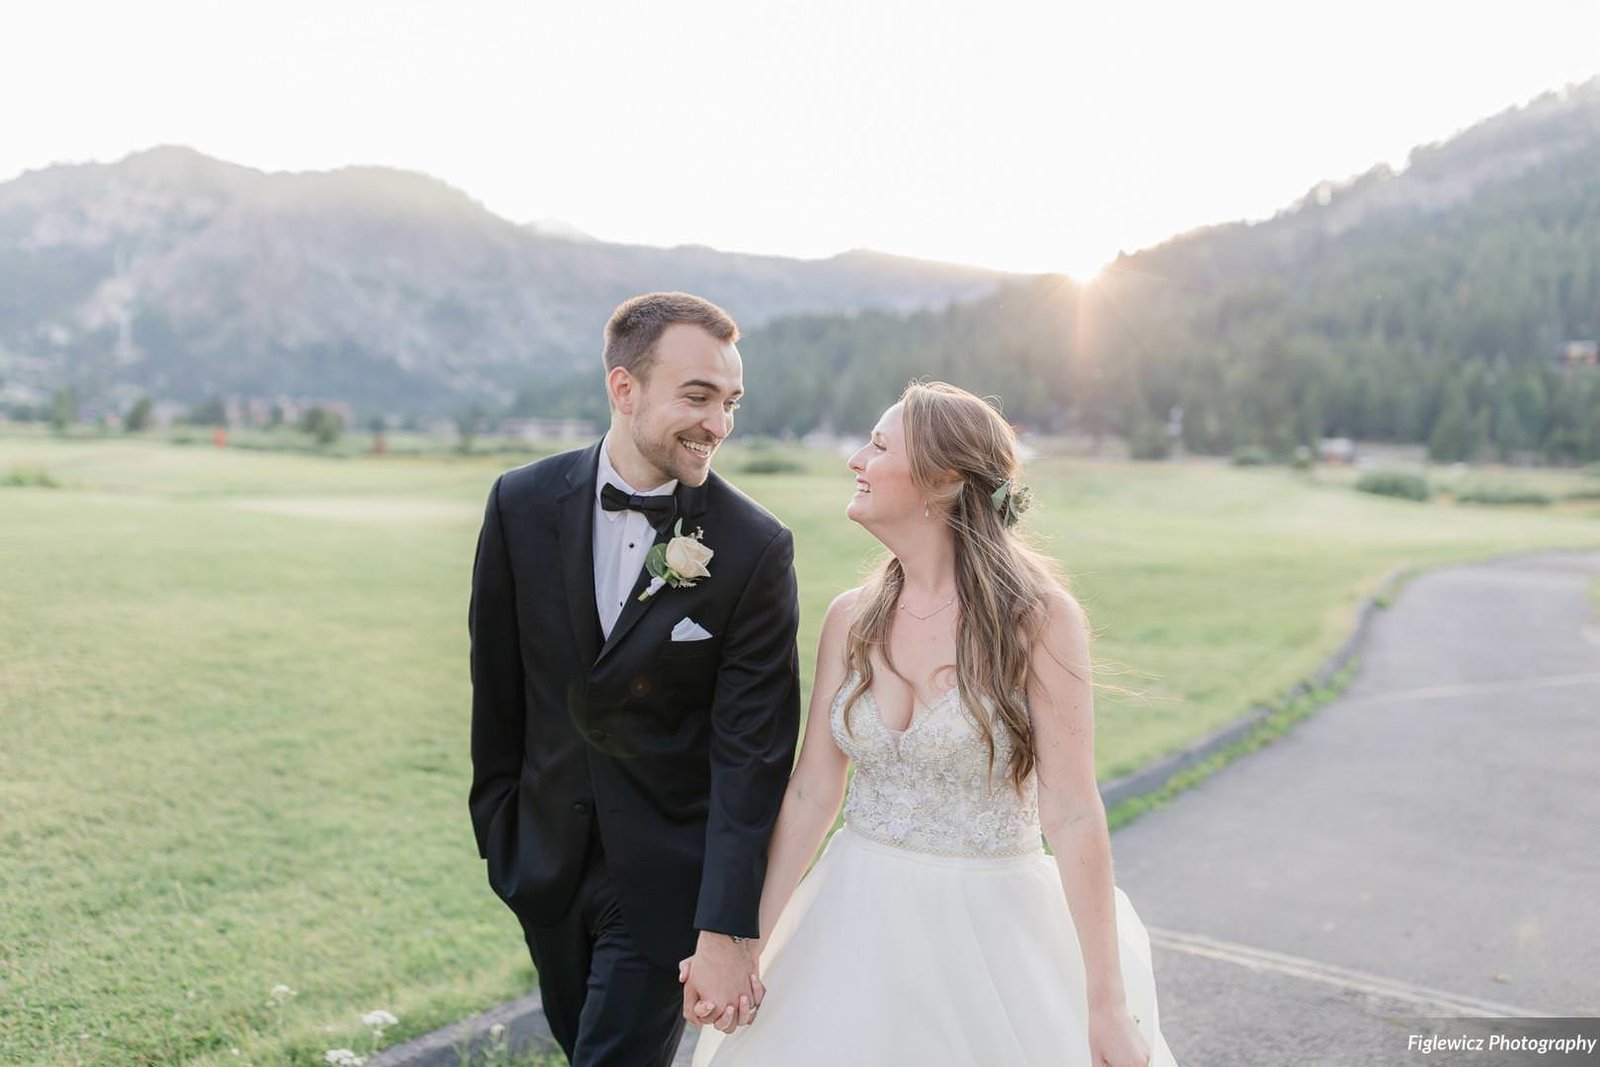 Garden_Tinsley_FiglewiczPhotography_LakeTahoeWeddingSquawValleyCreekTaylorBrendan00150_big